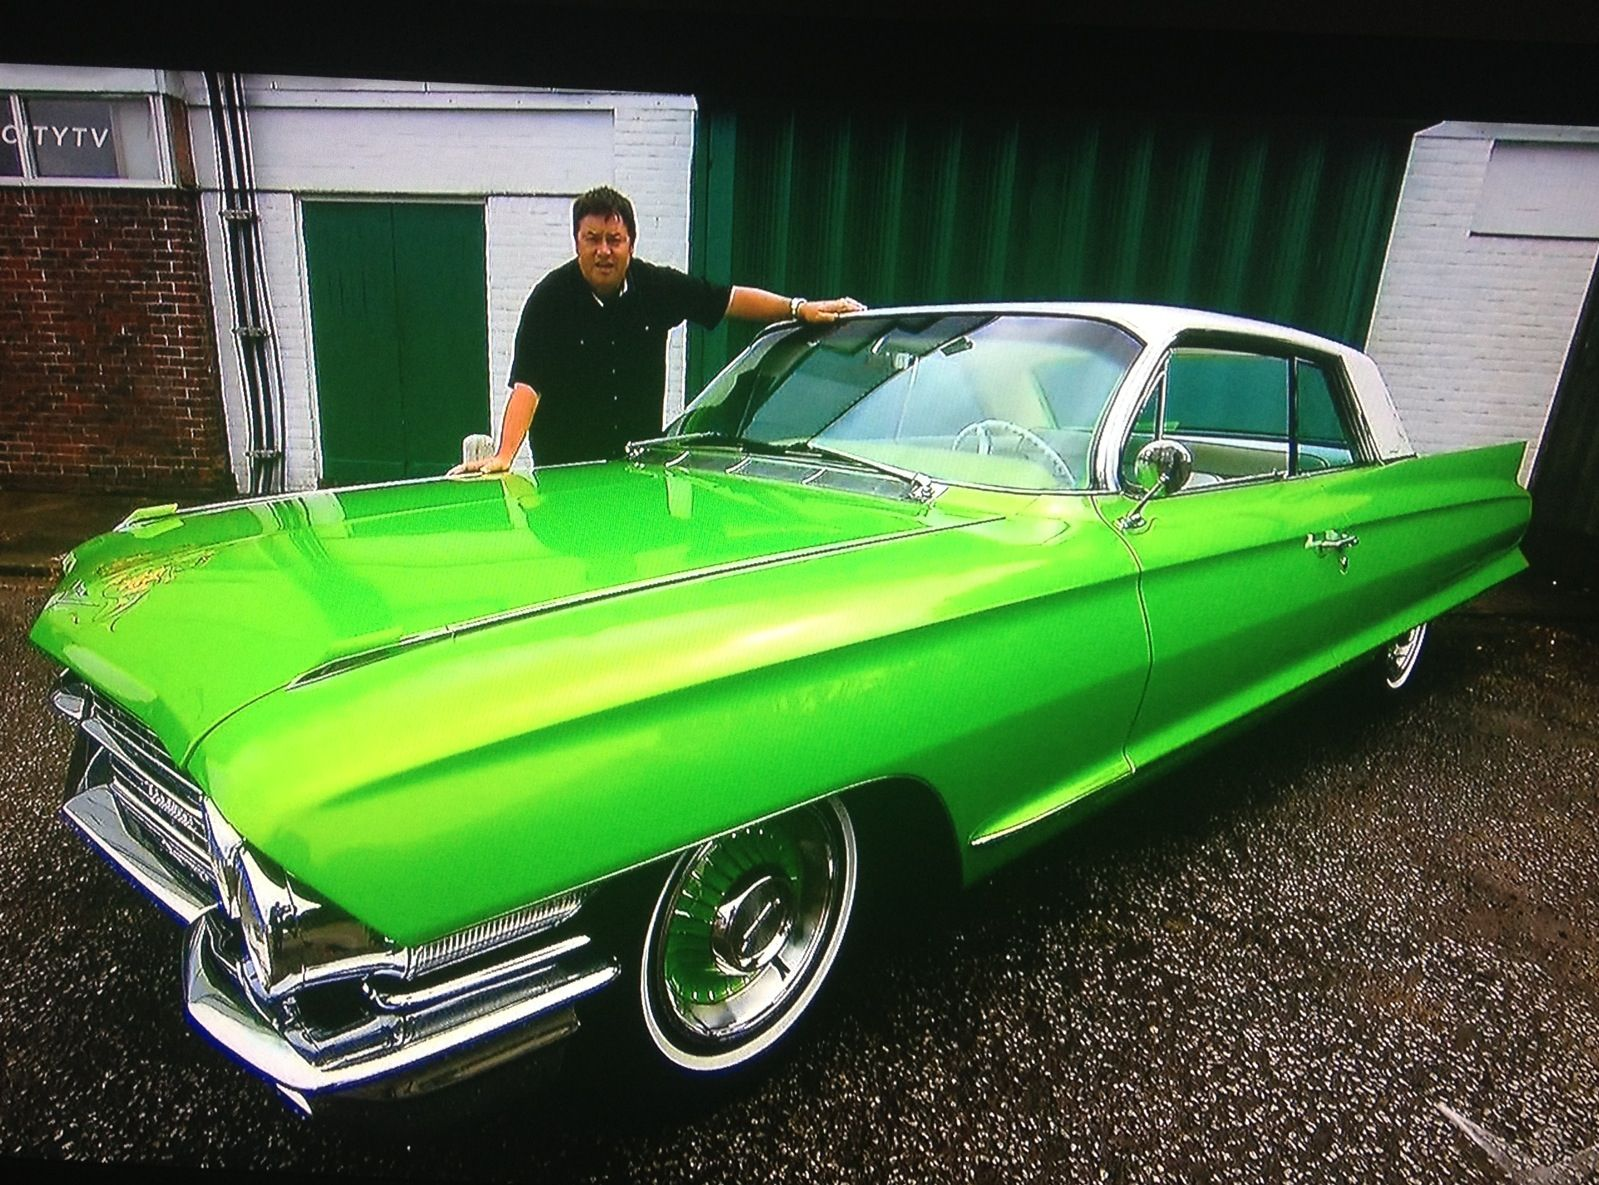 1960 cadillac done by wheeler dealers very nice this car was purchase here in california all. Black Bedroom Furniture Sets. Home Design Ideas